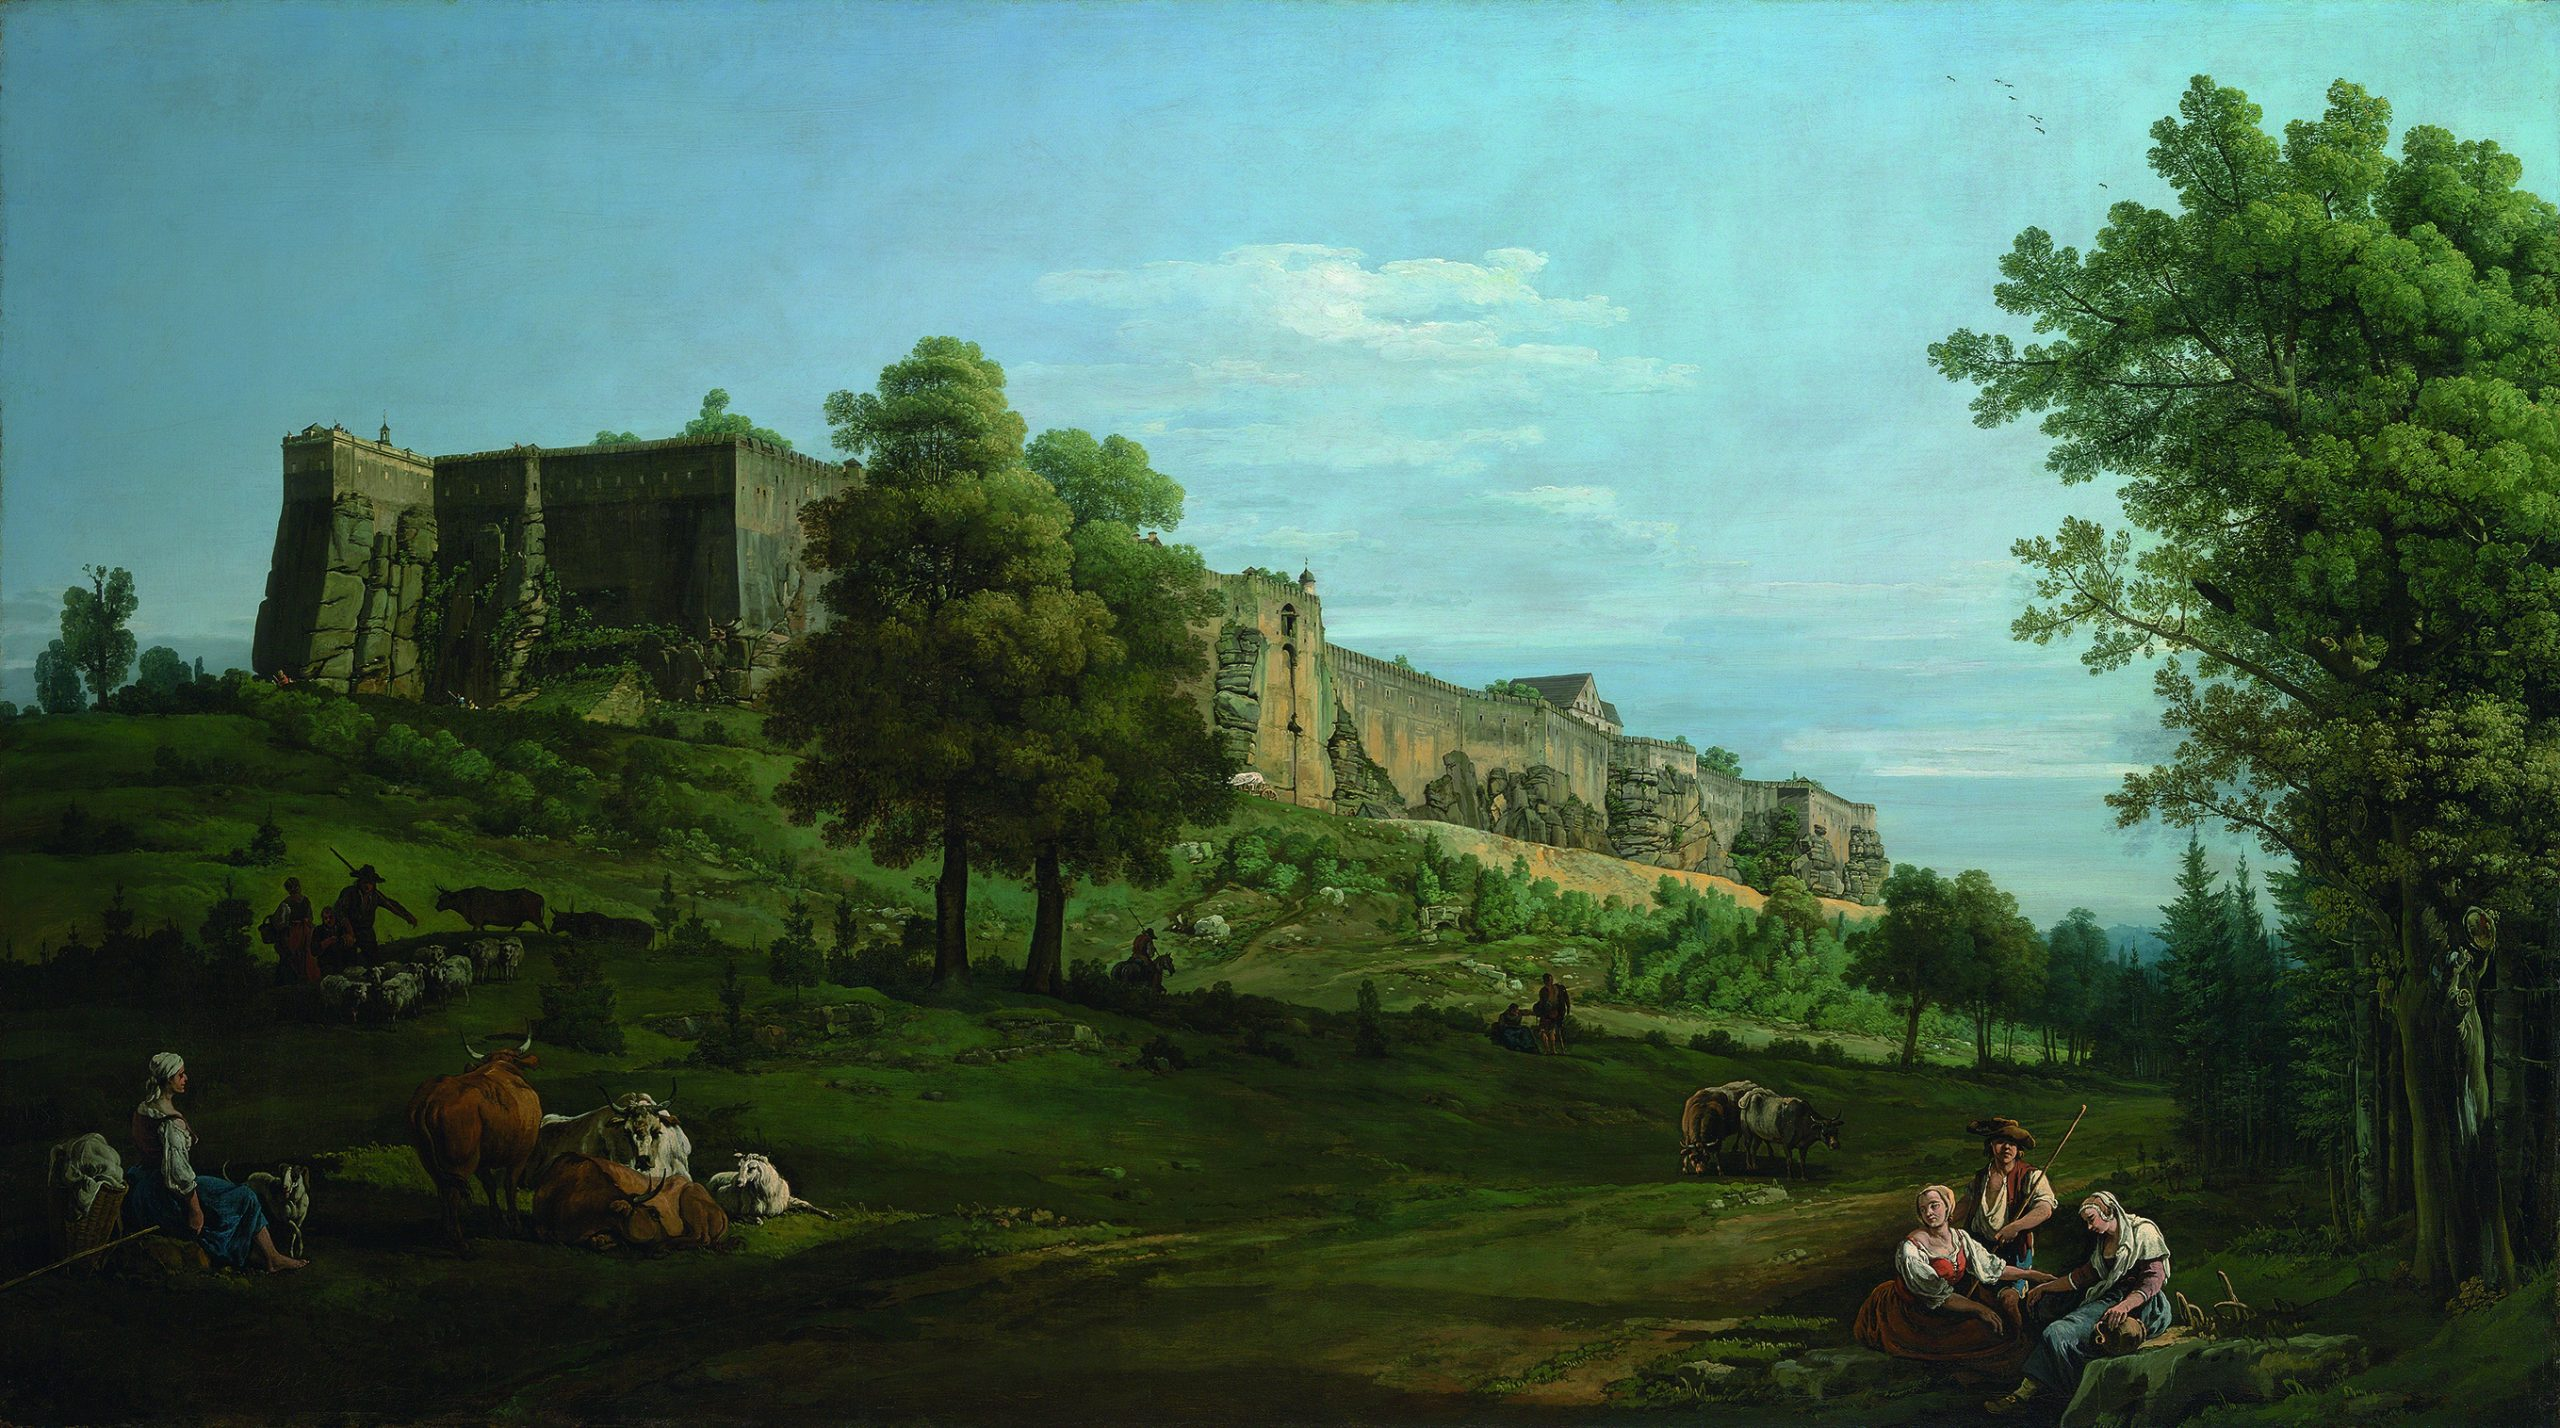 Bernardo Bellotto, The Fortress of Königstein from the South-West, 1756–8, Oil on canvas, 133.9 x 238 cm, The Earl of Derby_Photo © Christie's Images Limited